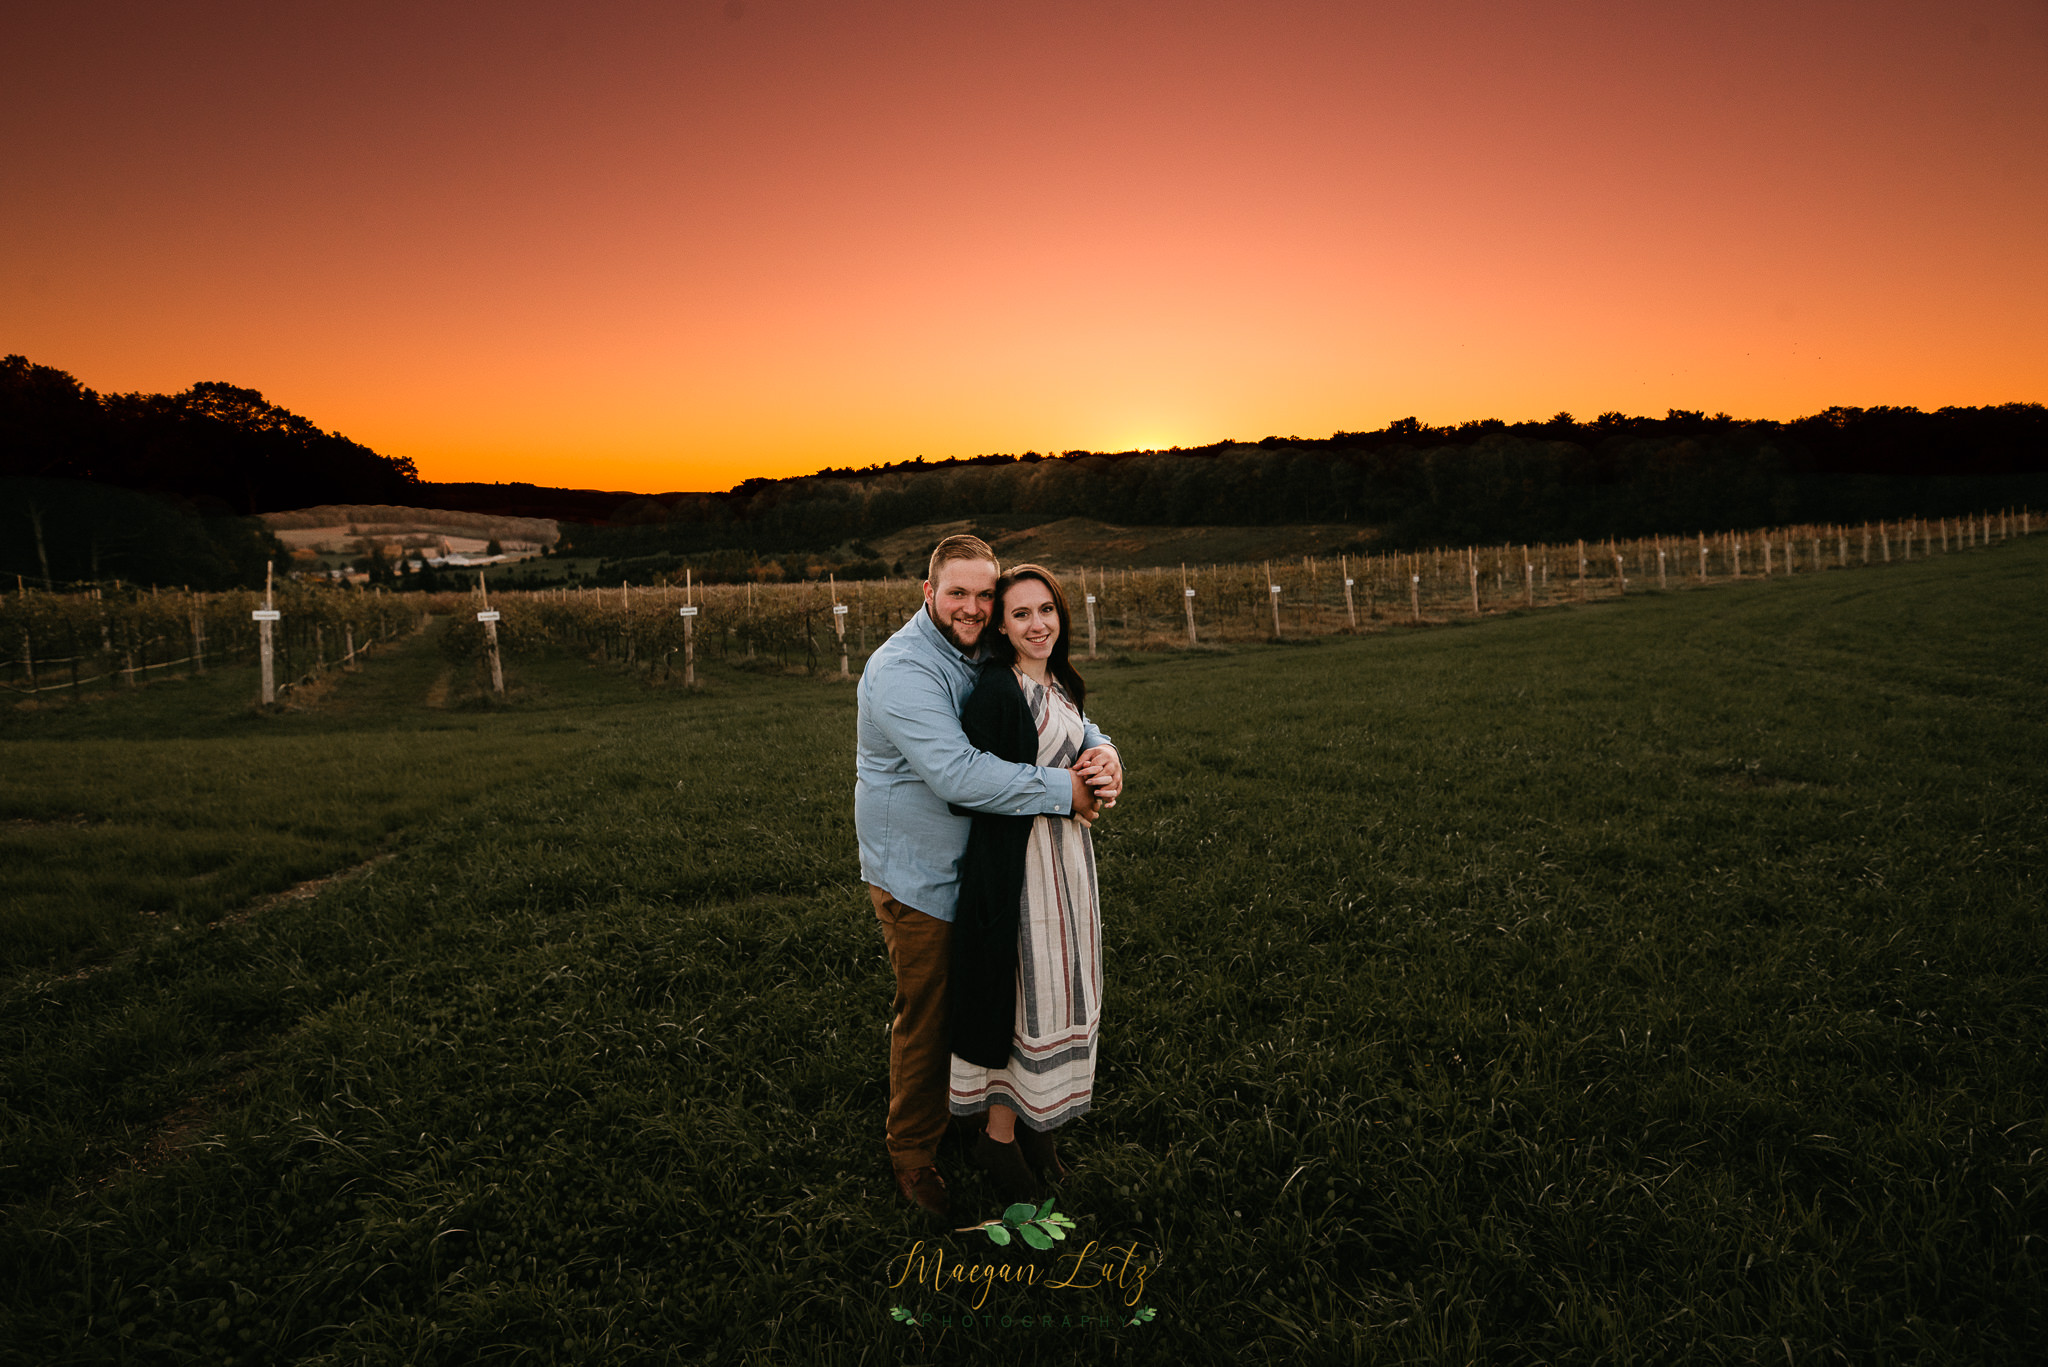 Poconos-NEPA-Wedding-Engagement-Photographer-session-at-Blue-Ridge-Estate-Vineyard-Winery-27.jpg